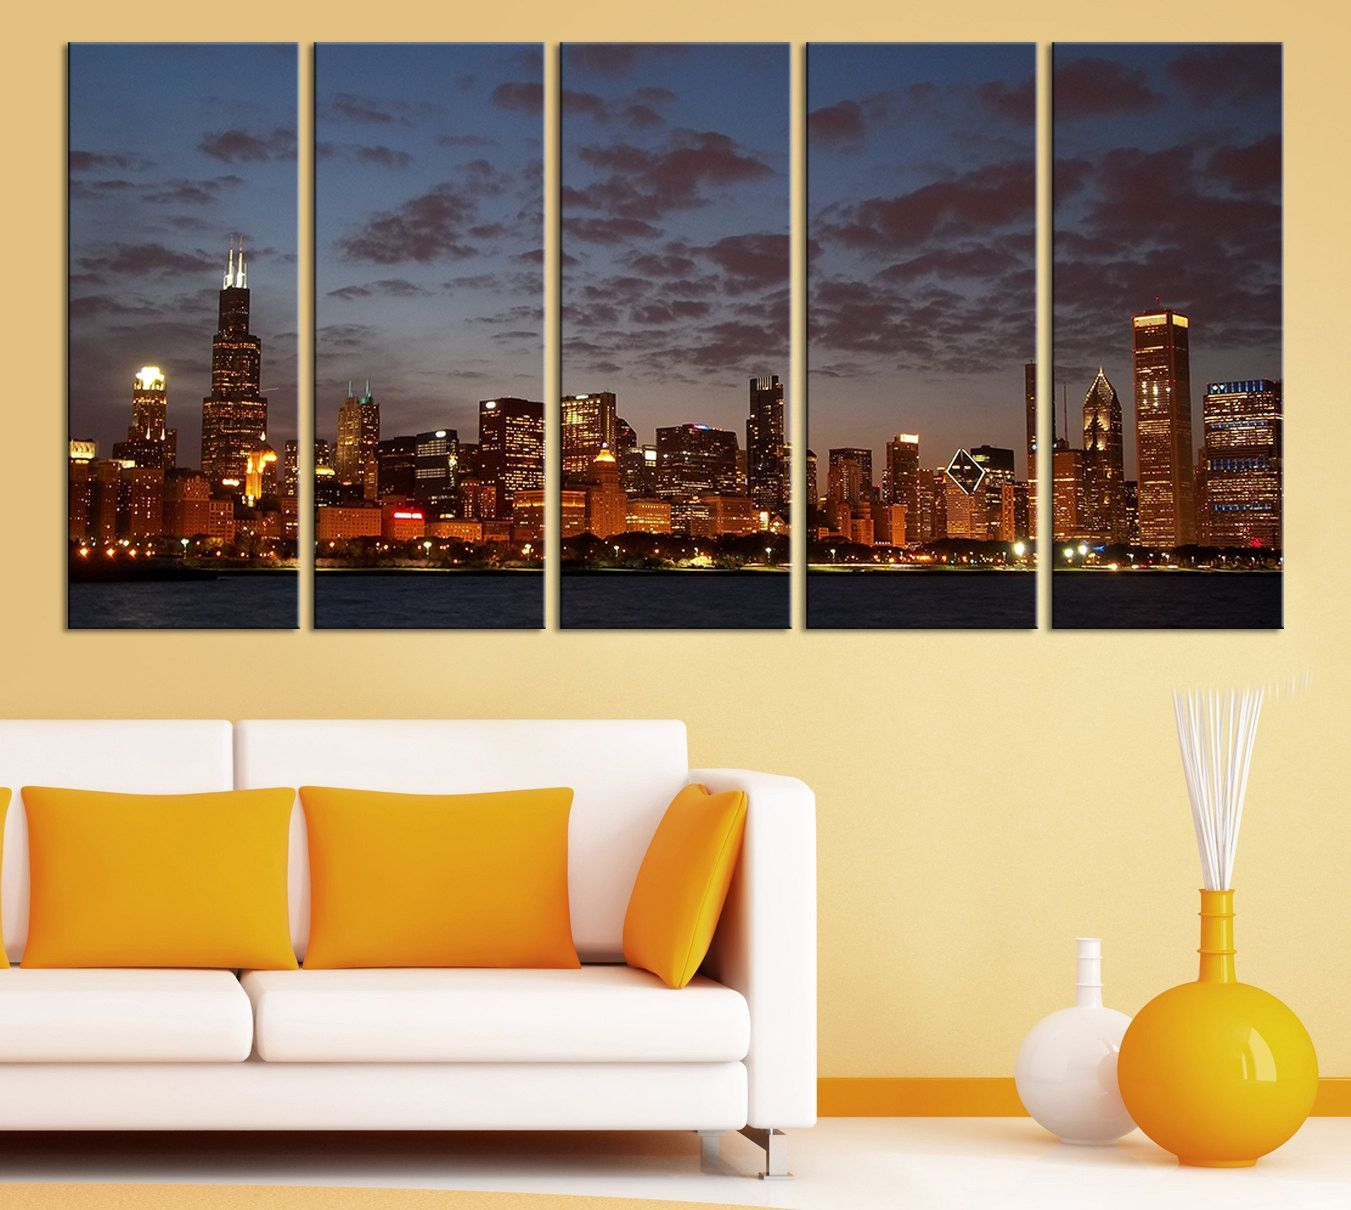 Large Wall Art Canvas Print Chicago City Skyline at Night - 5 Panel ...